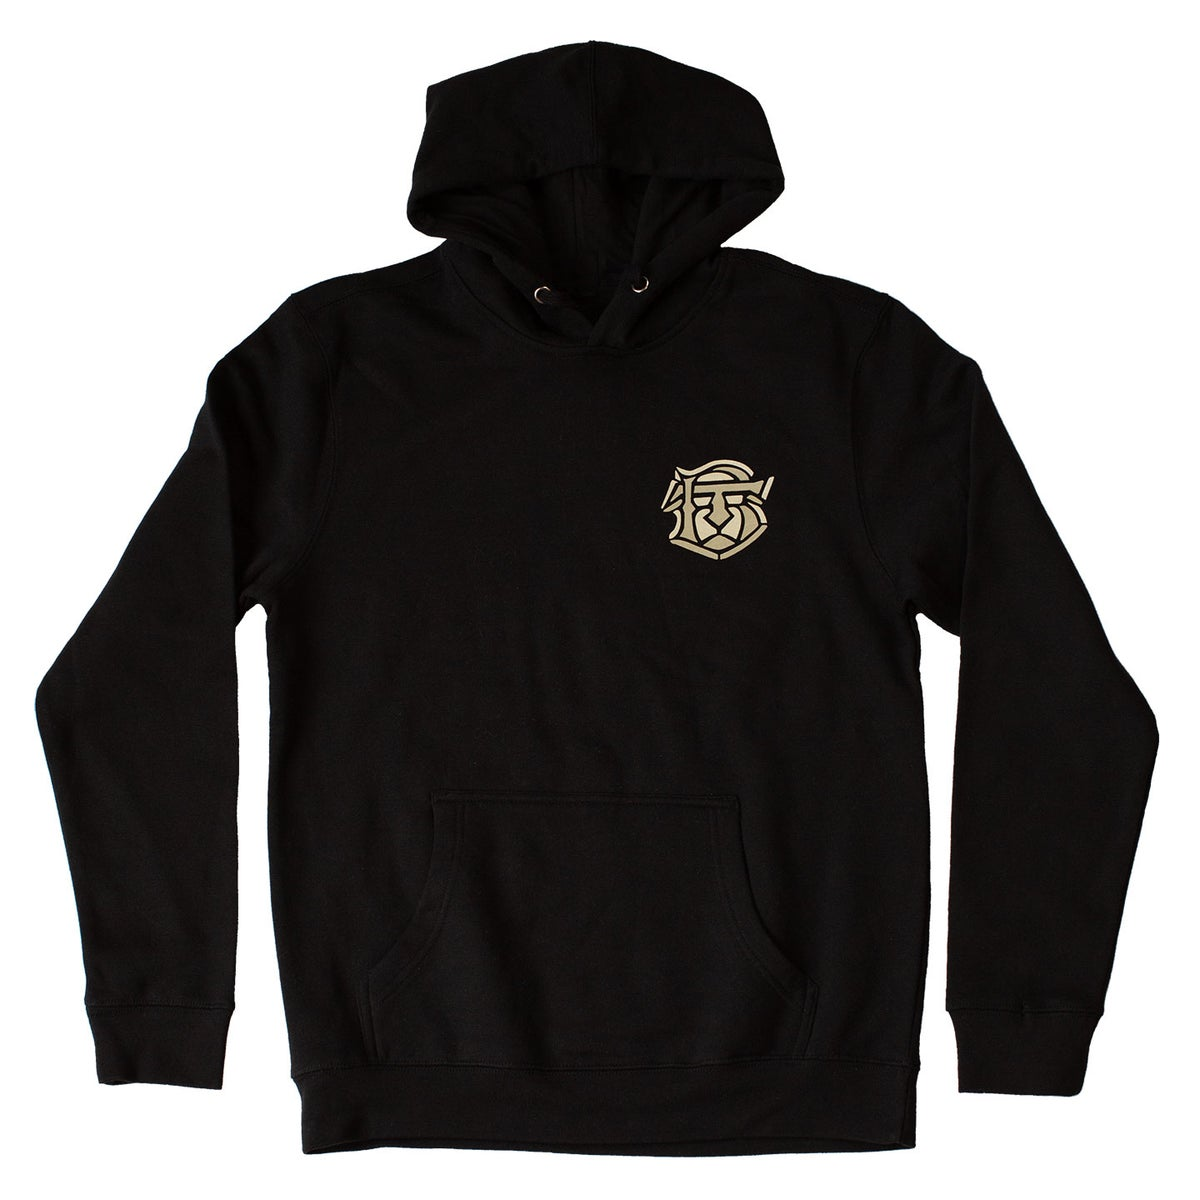 Image of Blind Tiger Hoodie: Black